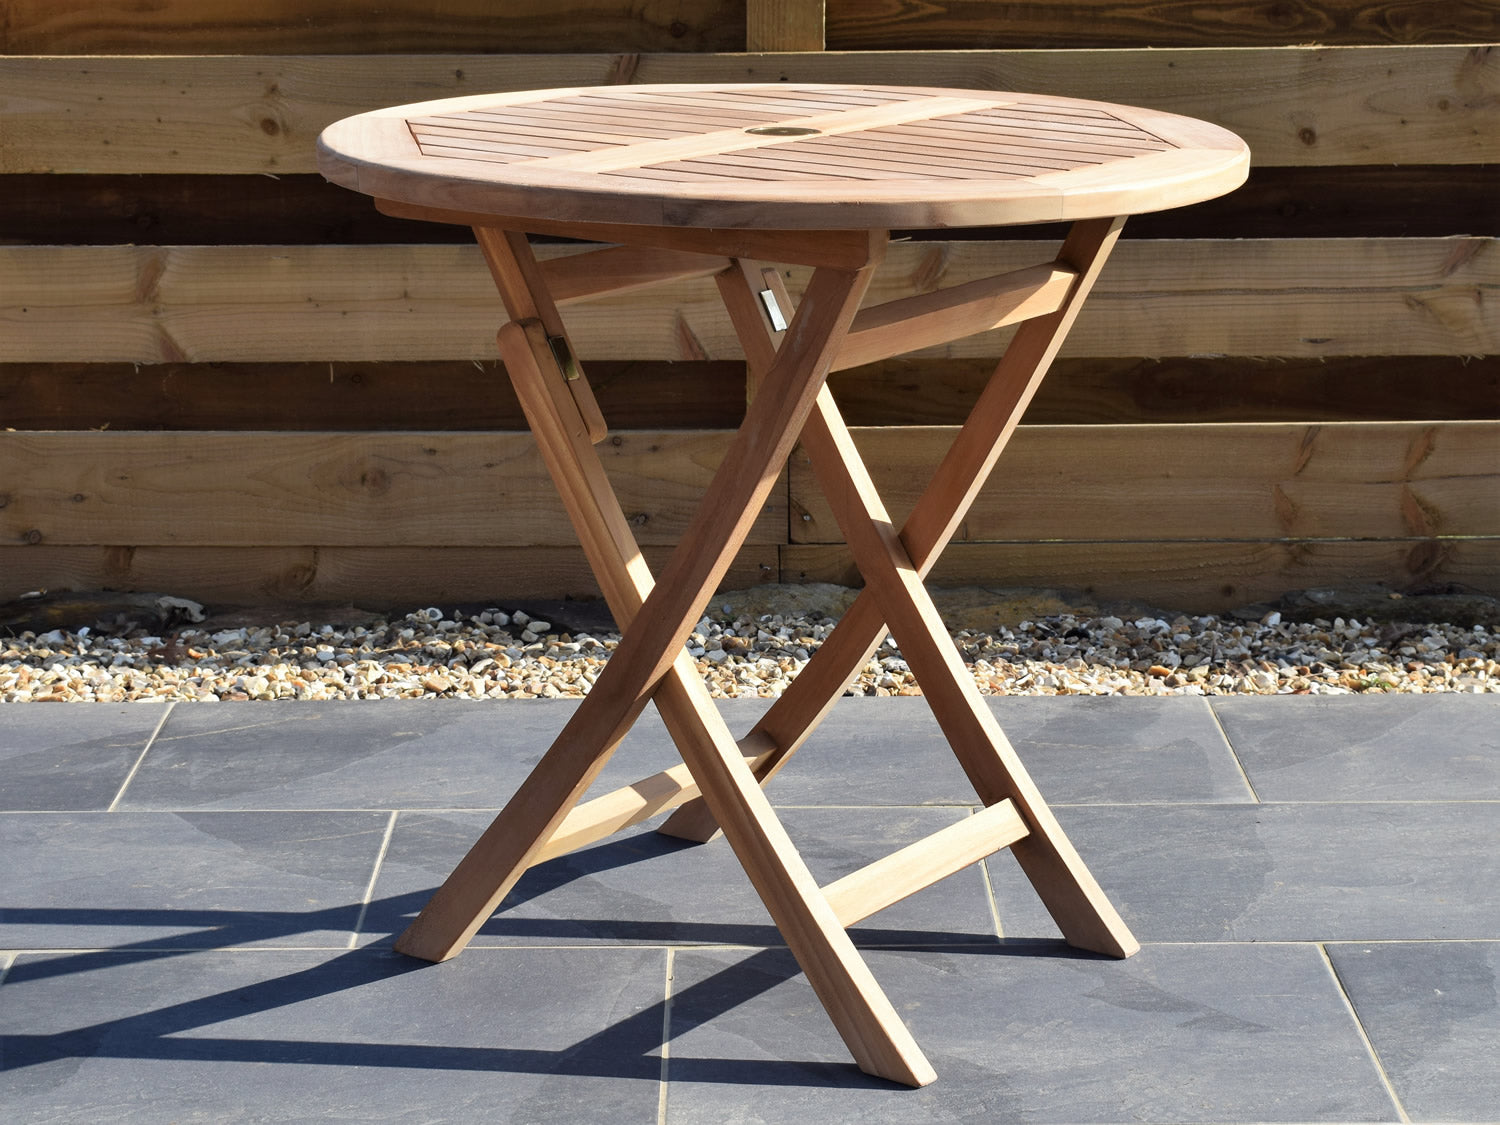 Teak 8cm Round Folding Table – Patio Garden Furniture